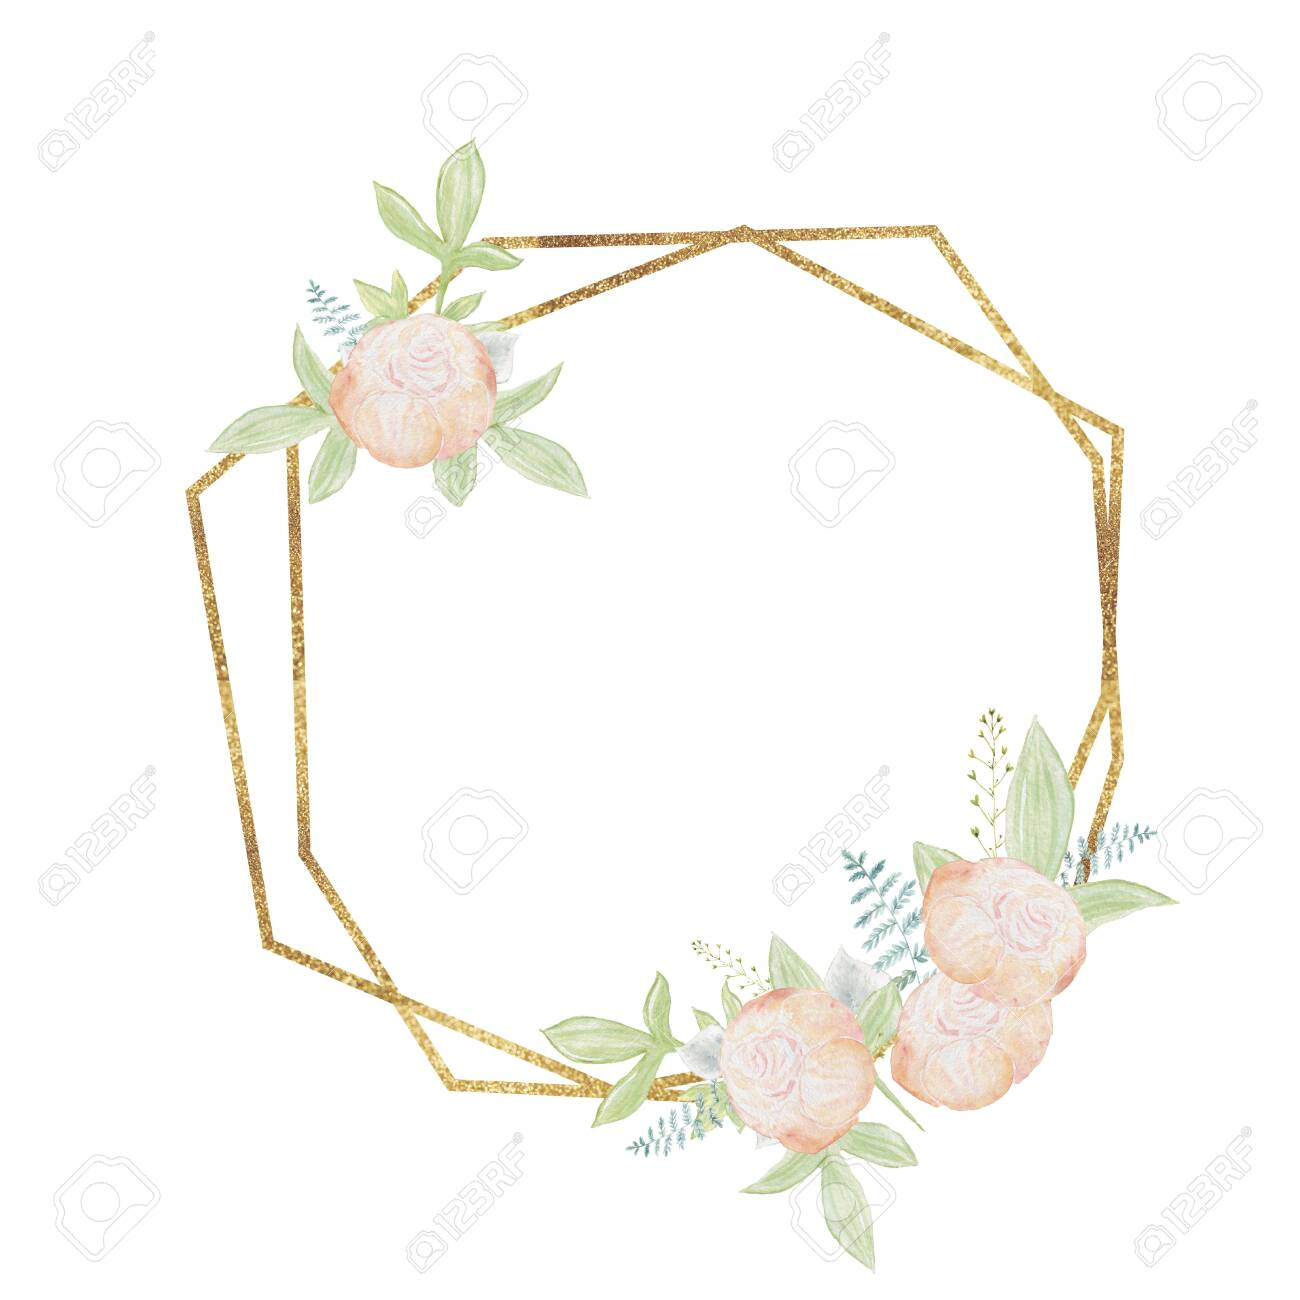 Watercolor Gold Floral Frame Wedding Frames Congratulatory Stock Photo Picture And Royalty Free Image Image 154152322